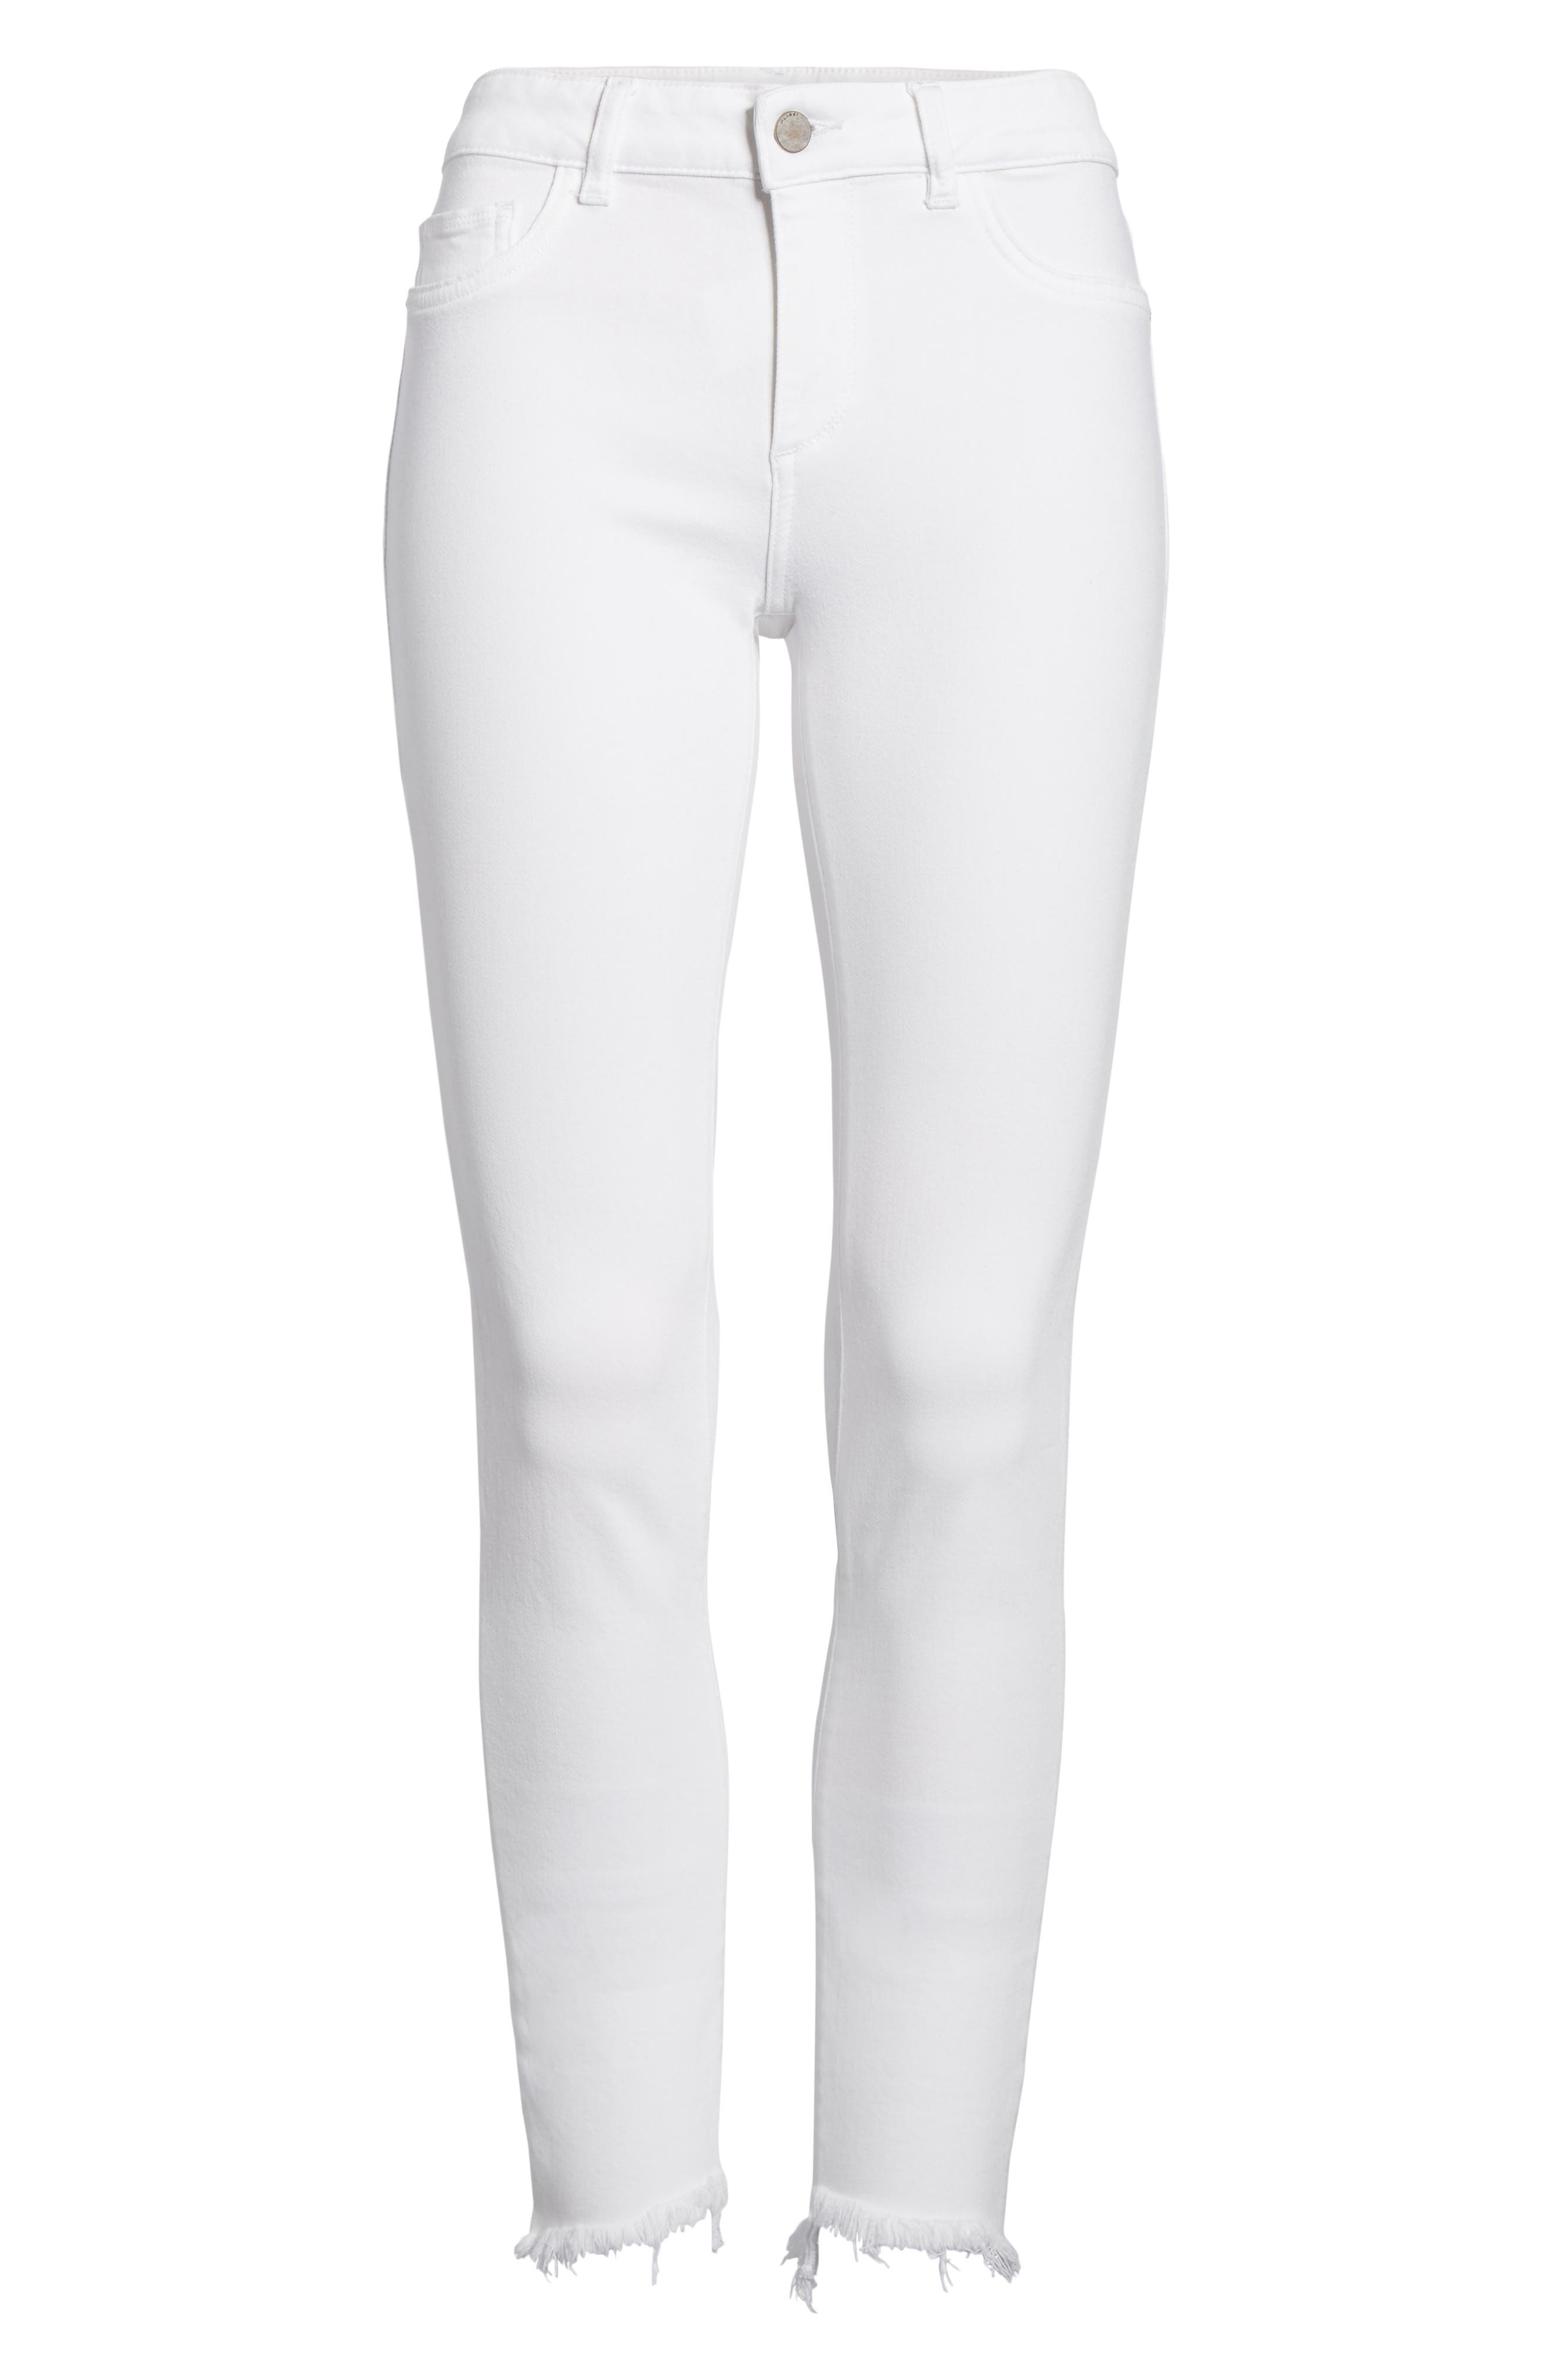 Margaux Instasculpt Ankle Skinny Jeans,                             Alternate thumbnail 7, color,                             Catalina